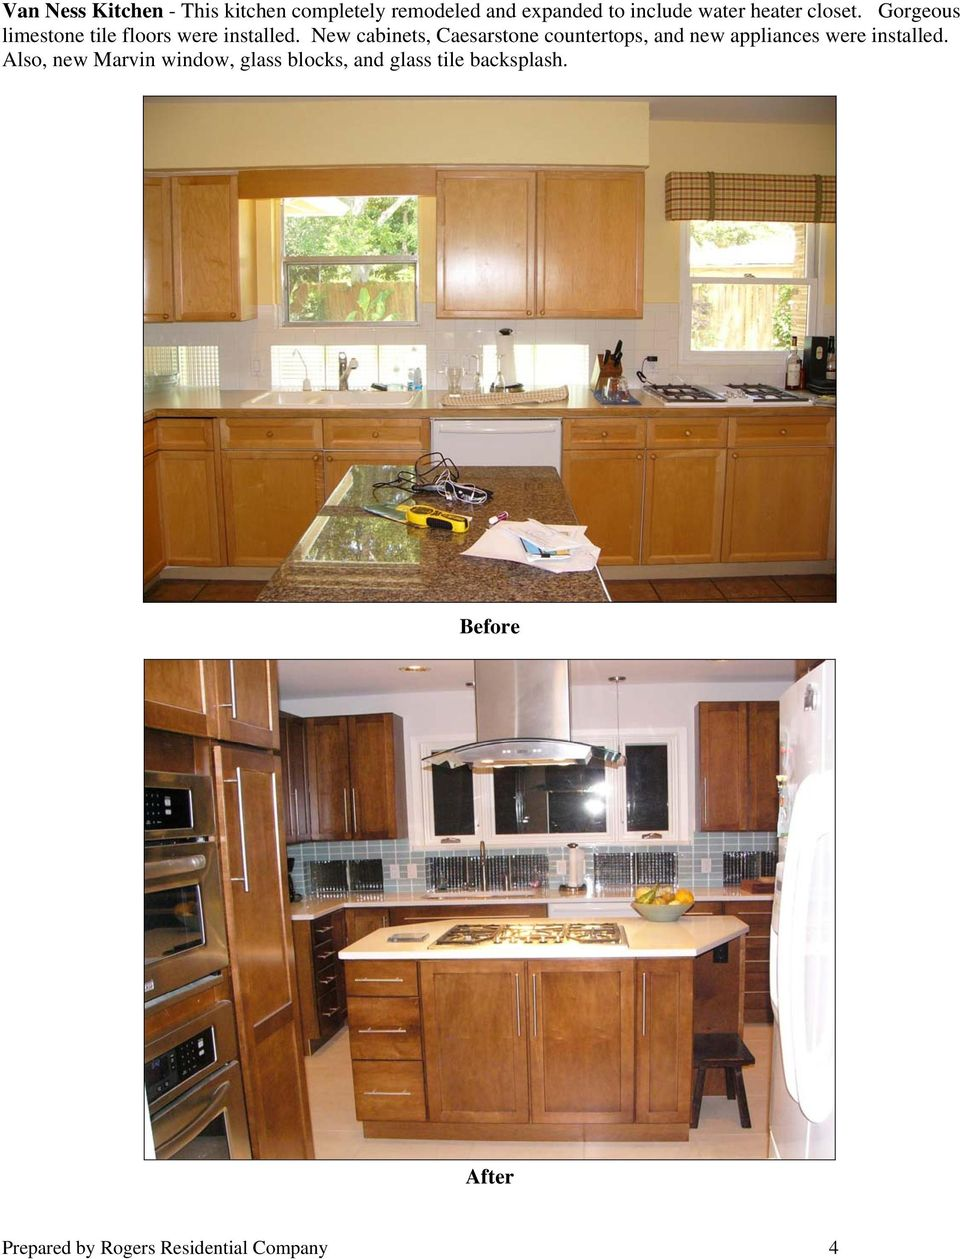 New cabinets, Caesarstone countertops, and new appliances were installed.